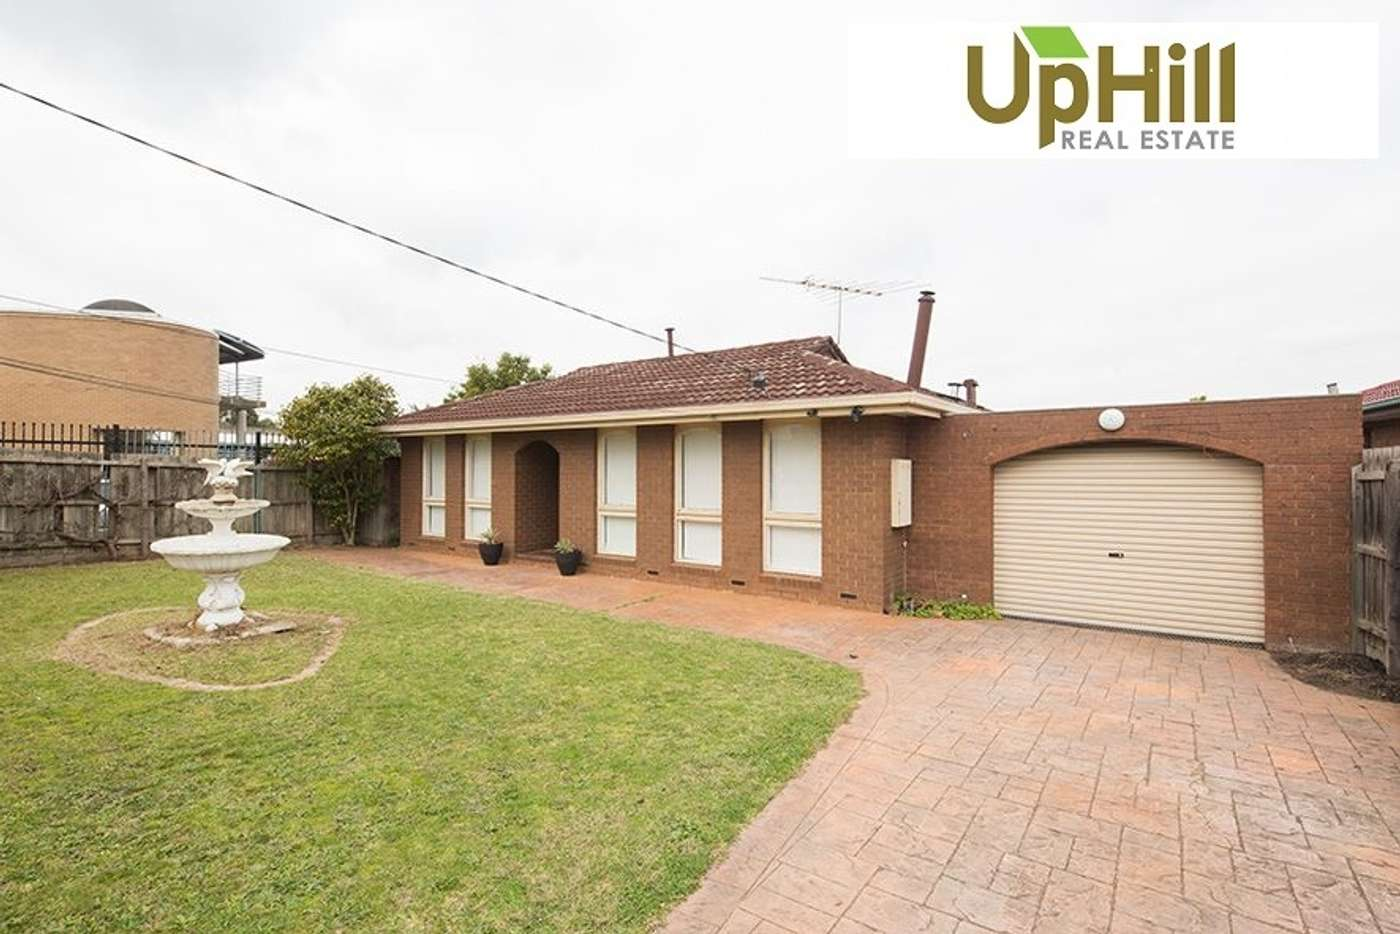 Main view of Homely house listing, 32 Shelton Crescent, Noble Park VIC 3174